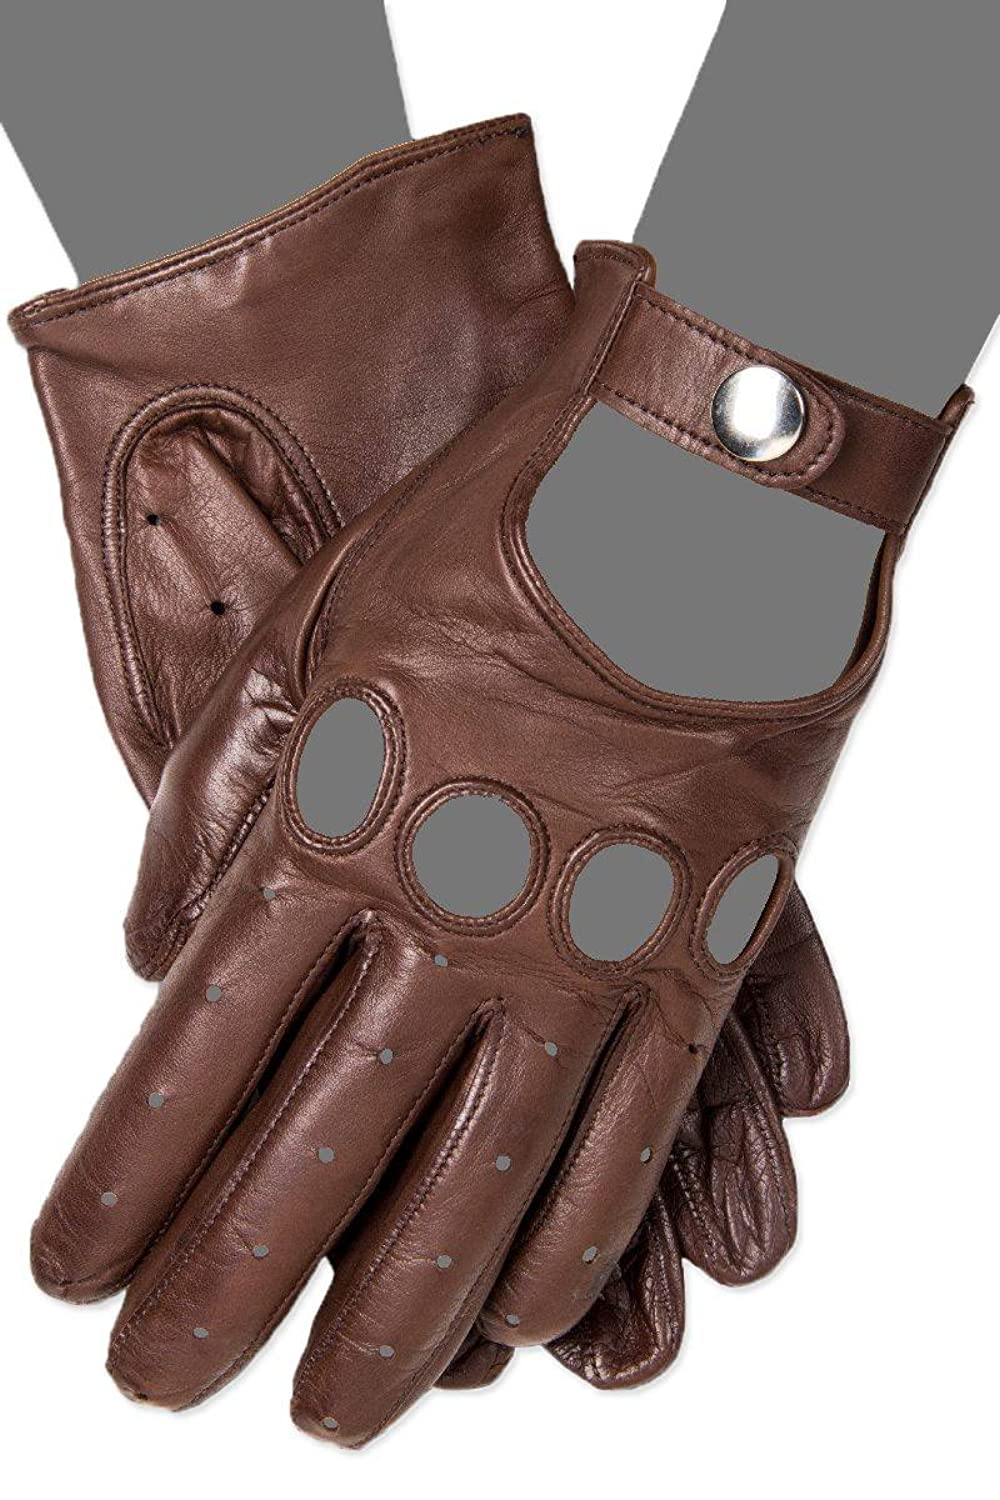 Leather driving gloves vancouver - Gaspar Men S Driving Gloves Featured In The Movie Drive Starring Ryan Gosling Amazon Ca Clothing Accessories